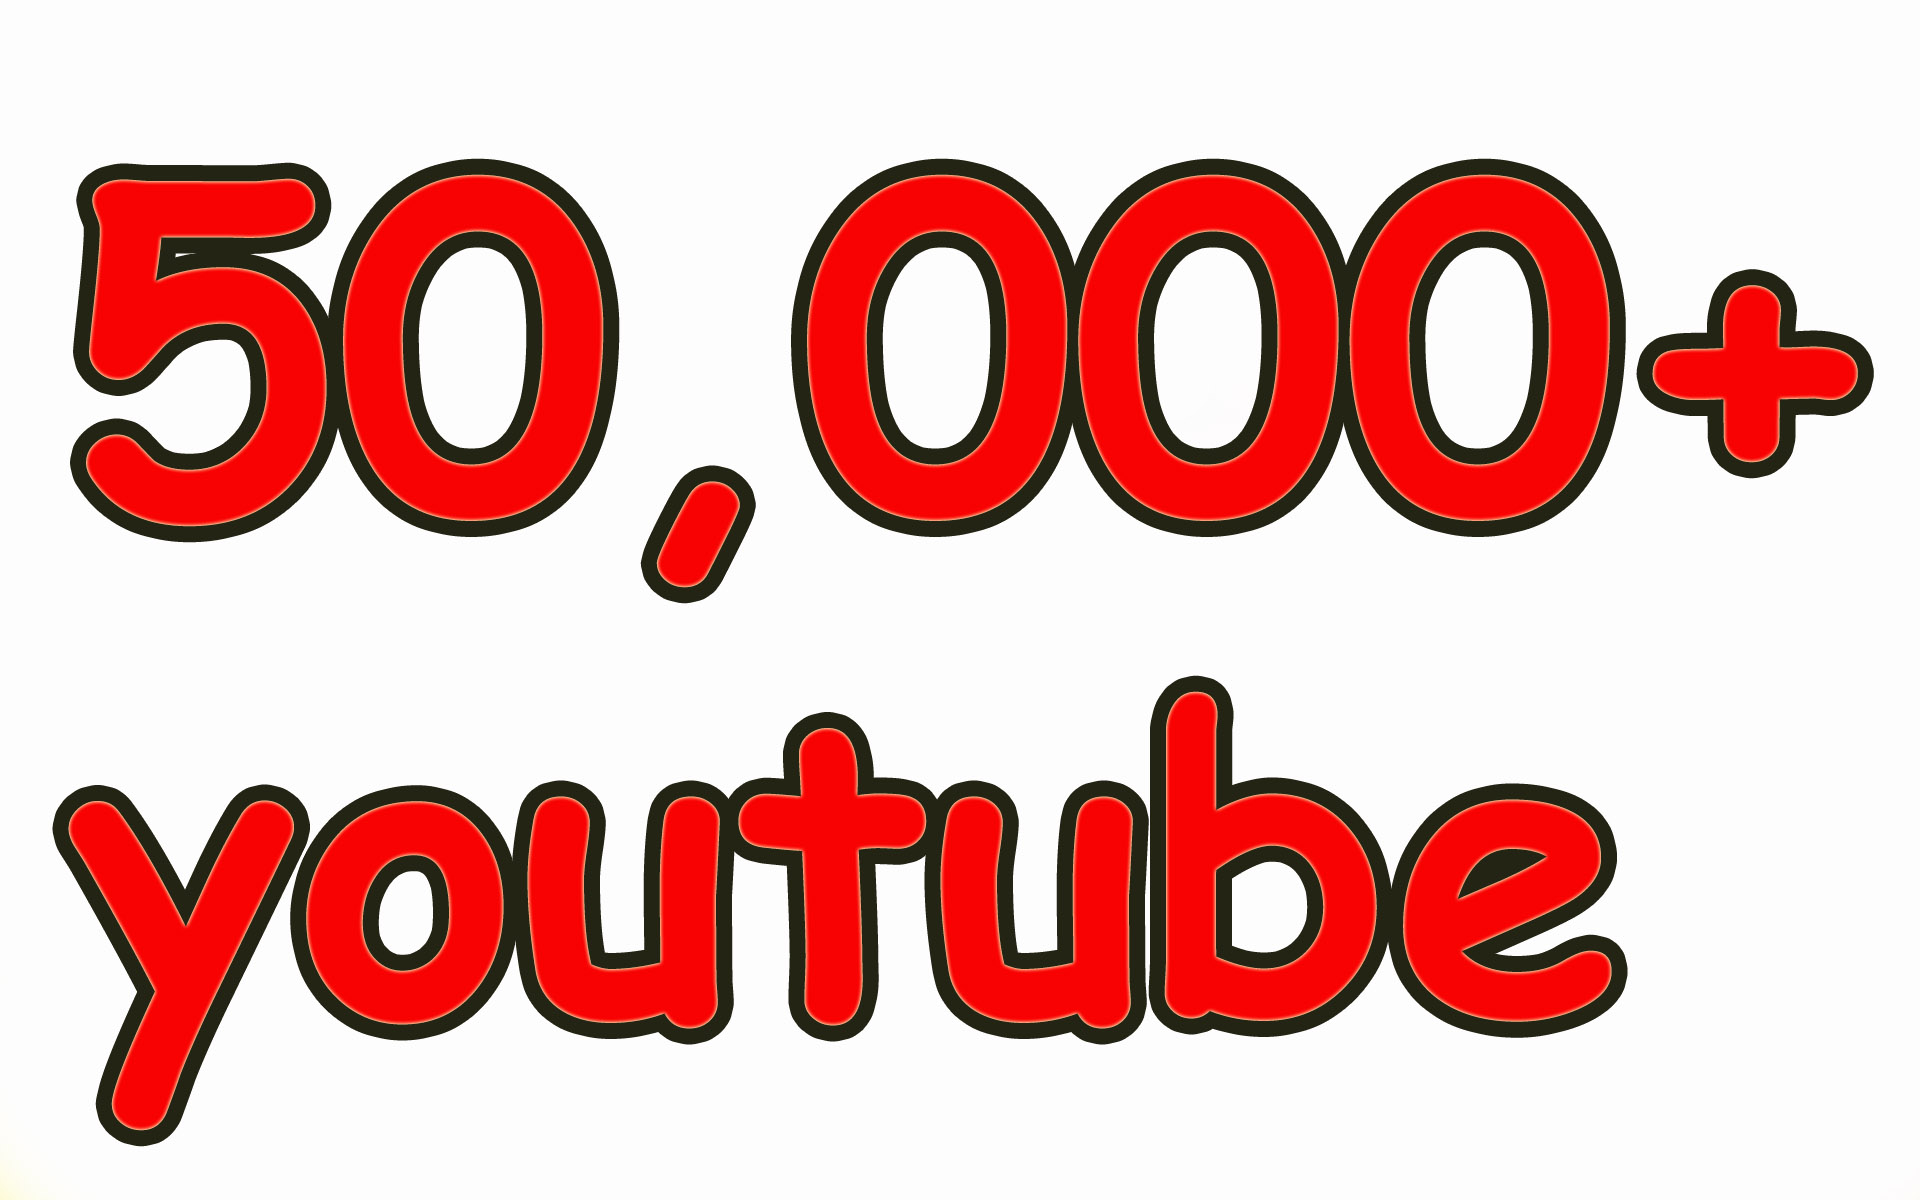 Provide you 50,000+ High Quality youtube Views safely.